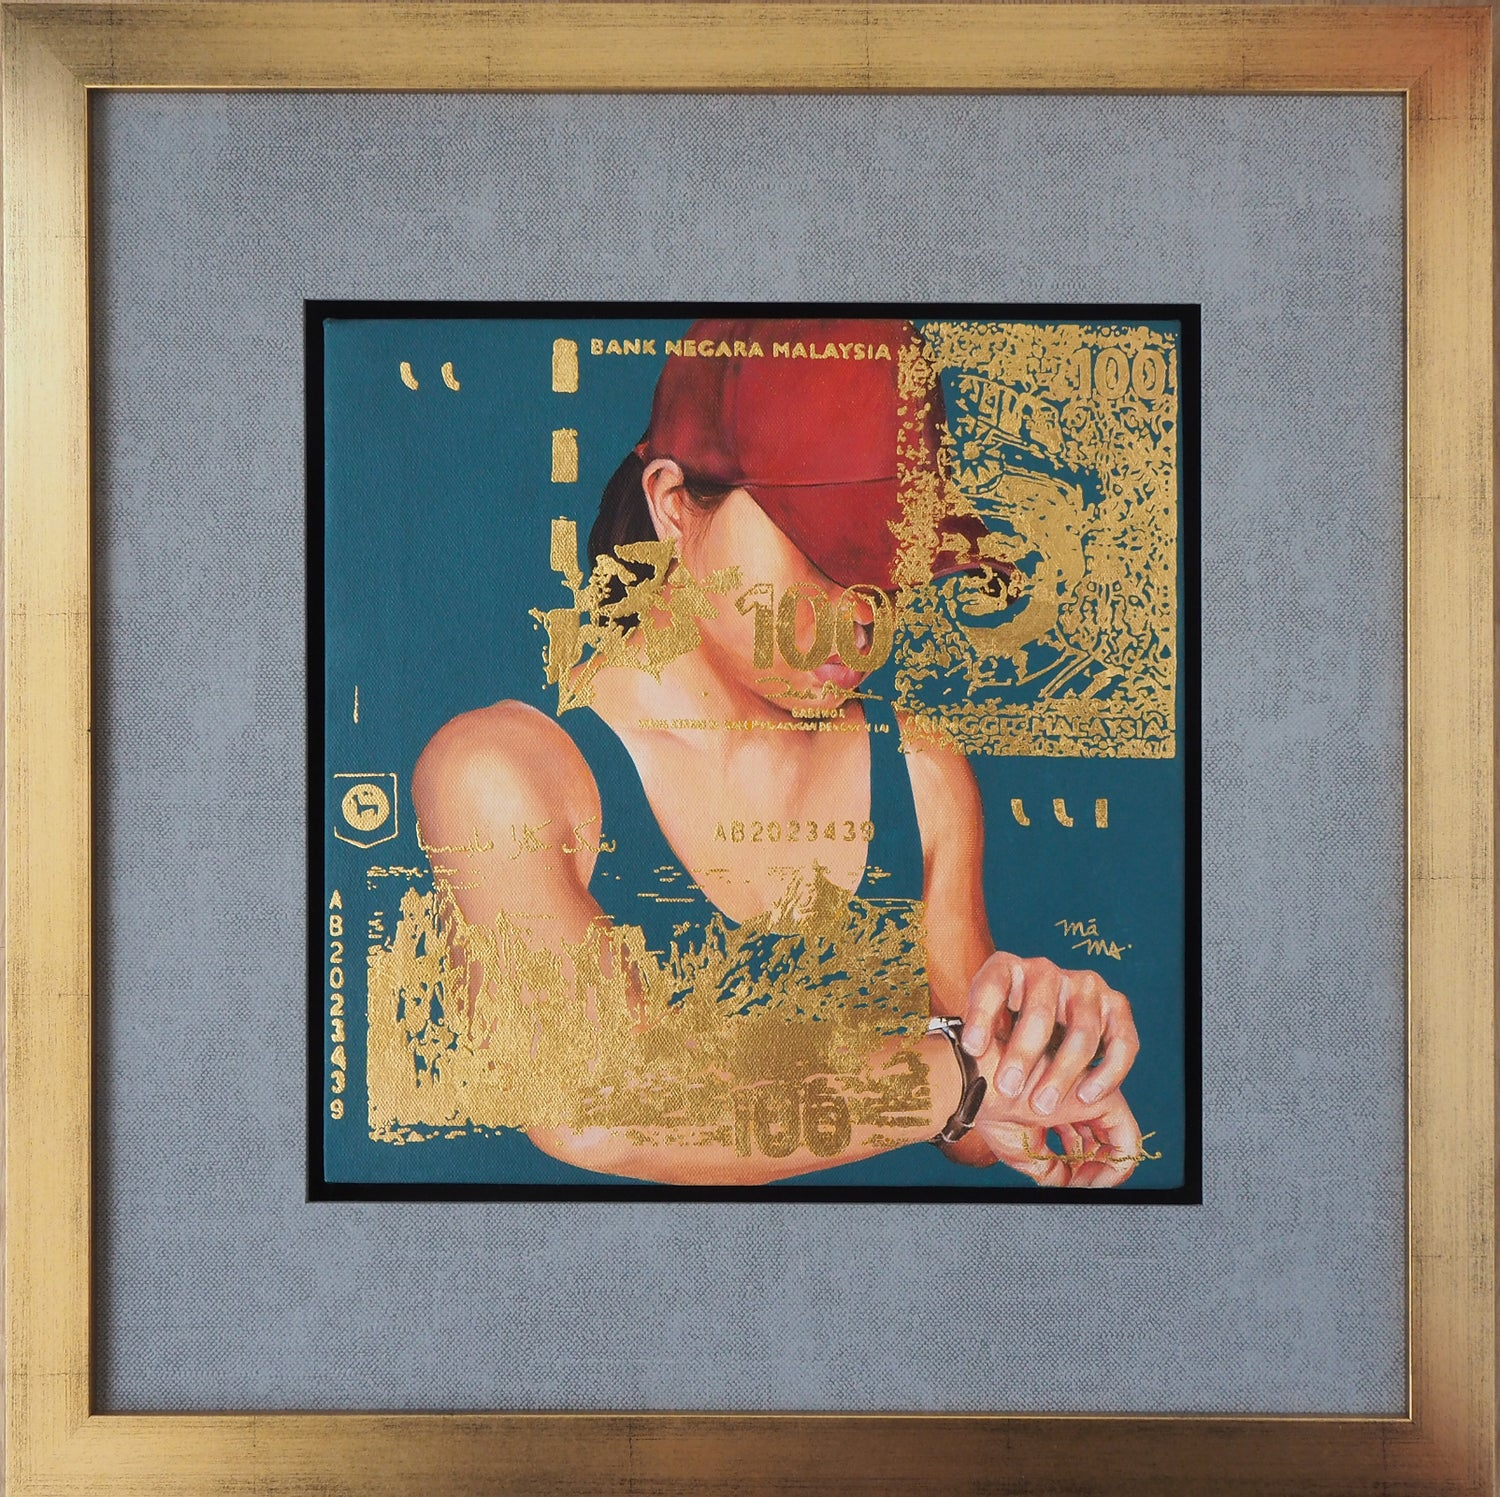 MONEY & TIME FULL GOLD-LEAF EMBELLISHMENT WITH FRAME